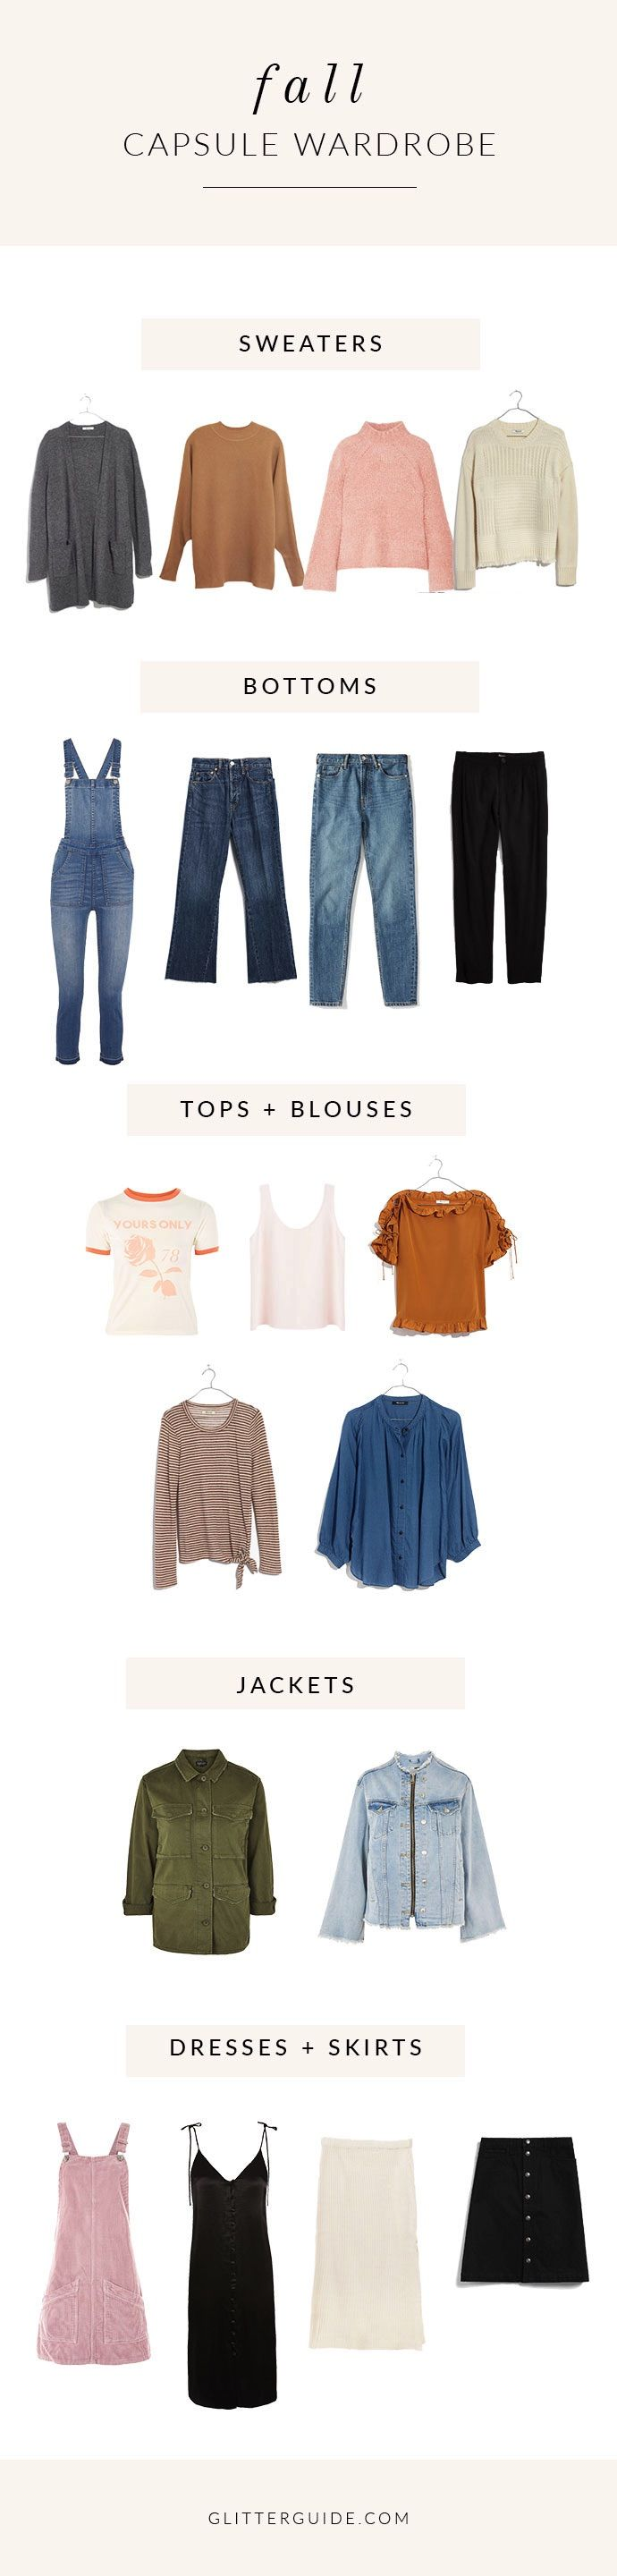 How To Build The Perfect Fall Capsule Wardrobe